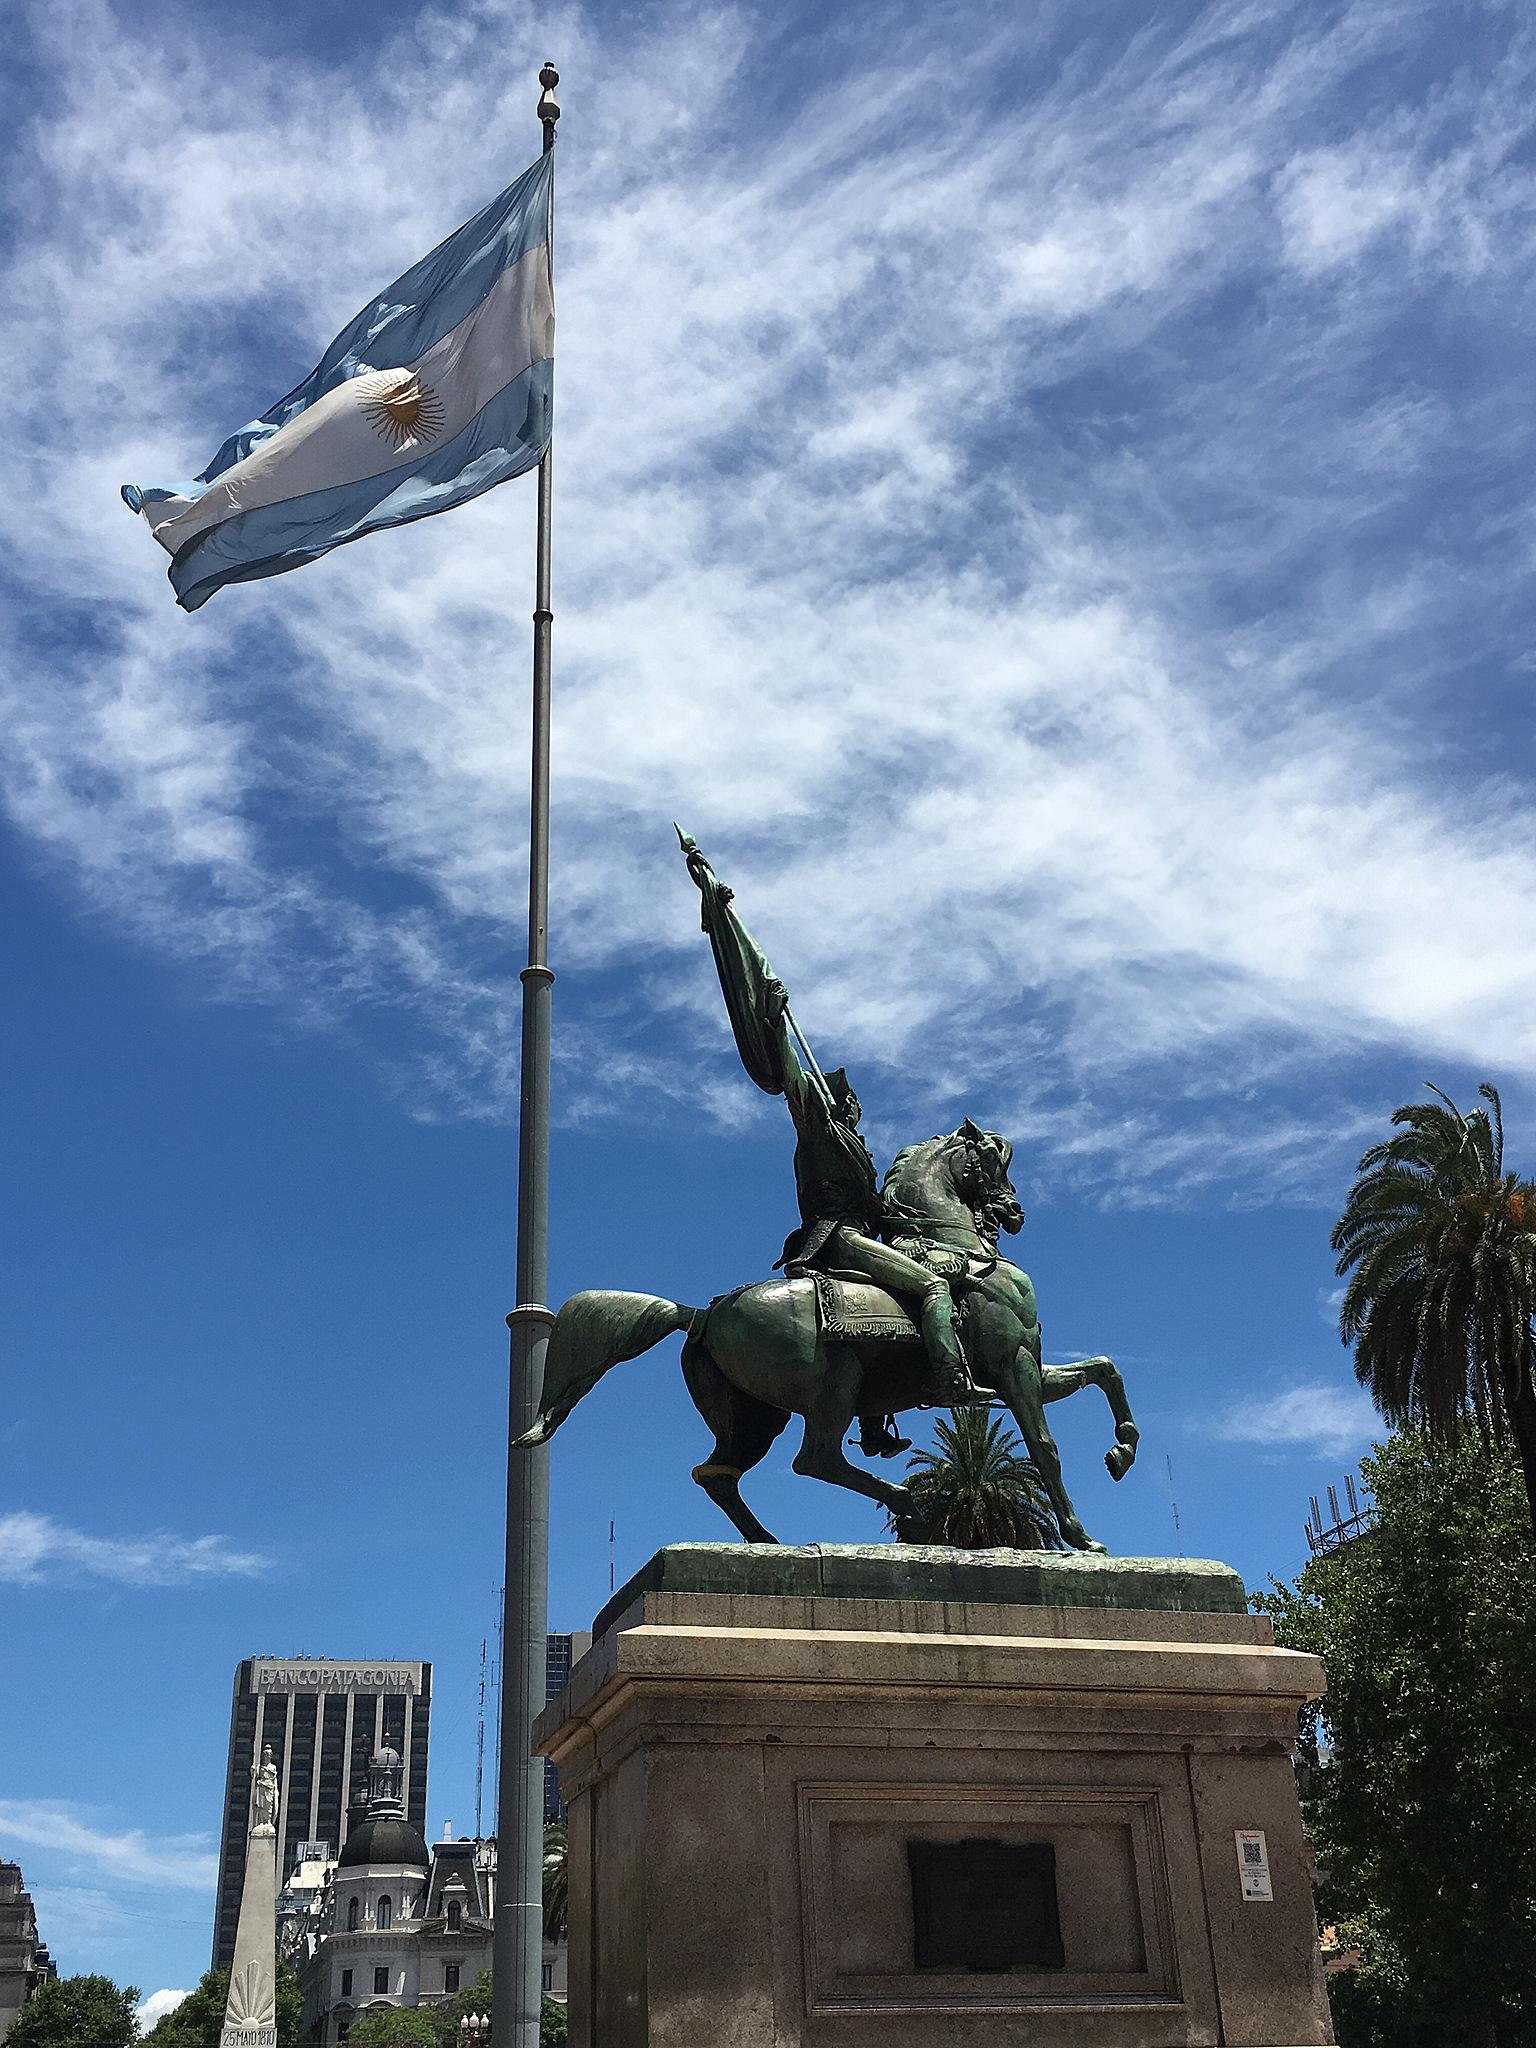 A statue of some army fellow riding atop a horse. Behind and above him flies the Argentinian flag.